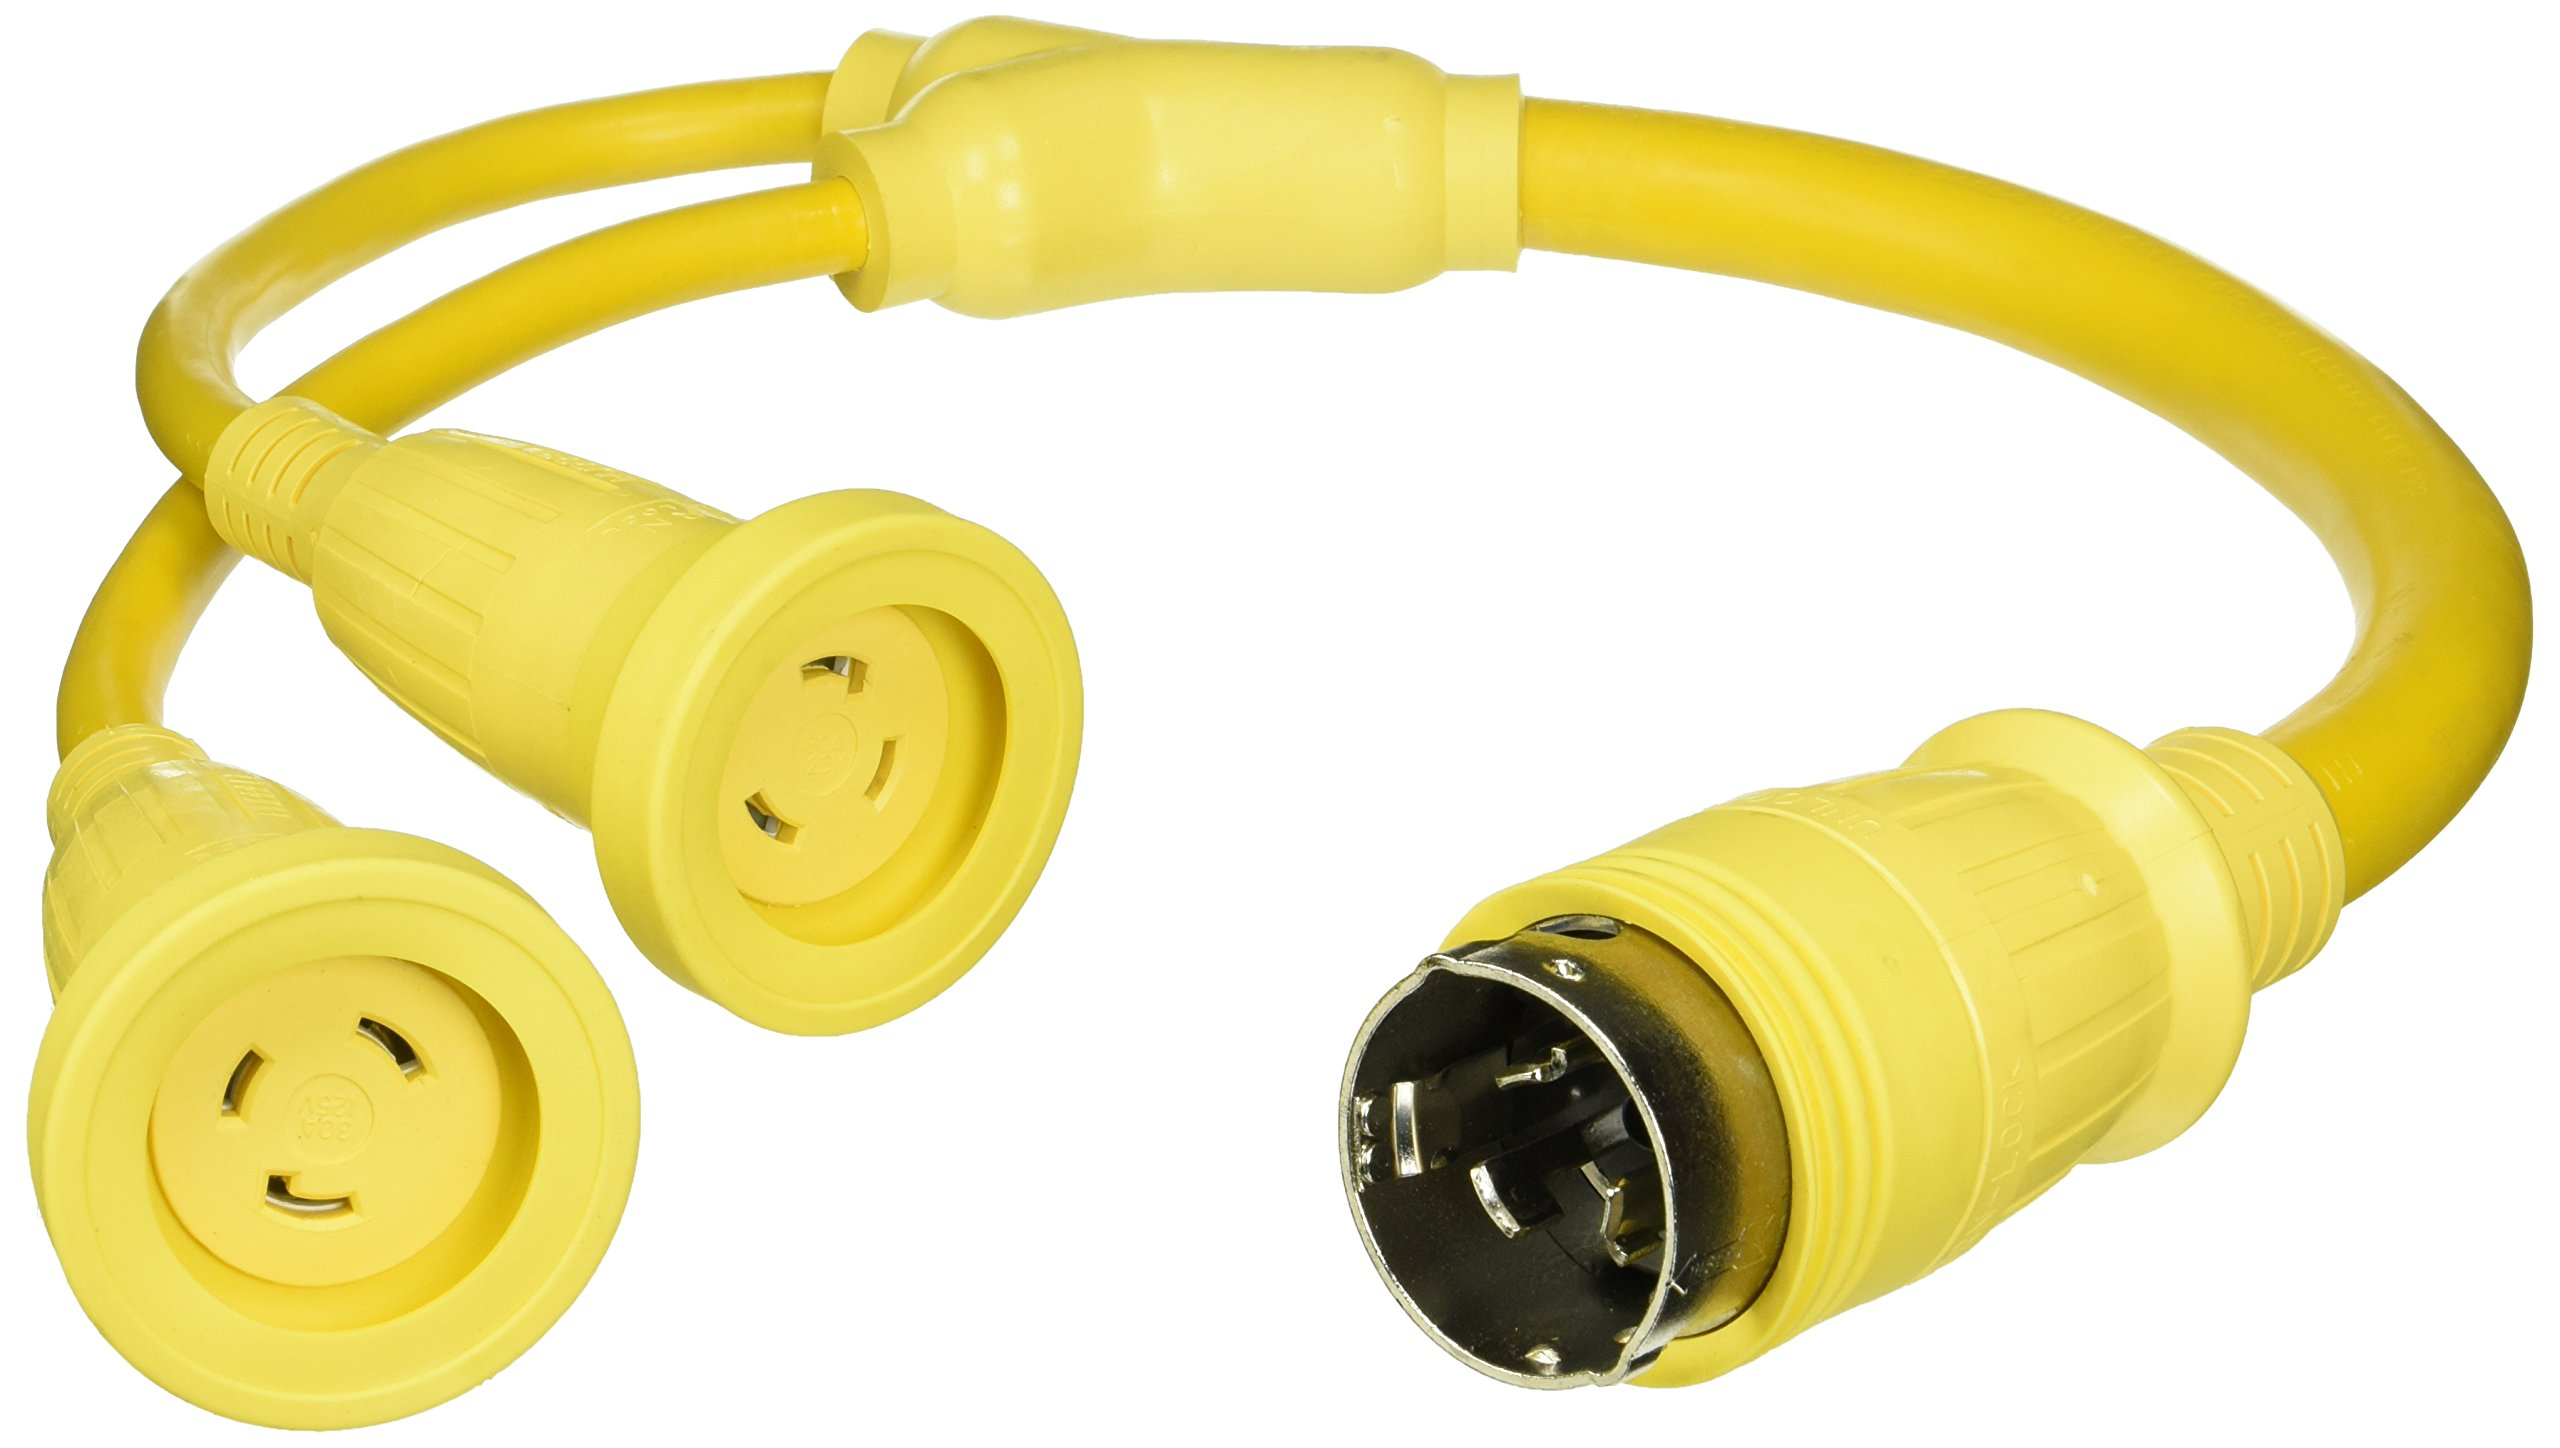 Hubbell Wiring Systems HBL64CM54 Molded Y Adapter, 30A, 125V, 2P, 3W Twist-Lock Female end with 50A, 125/250V, 3P, 4W Twist-Lock Male end, Yellow